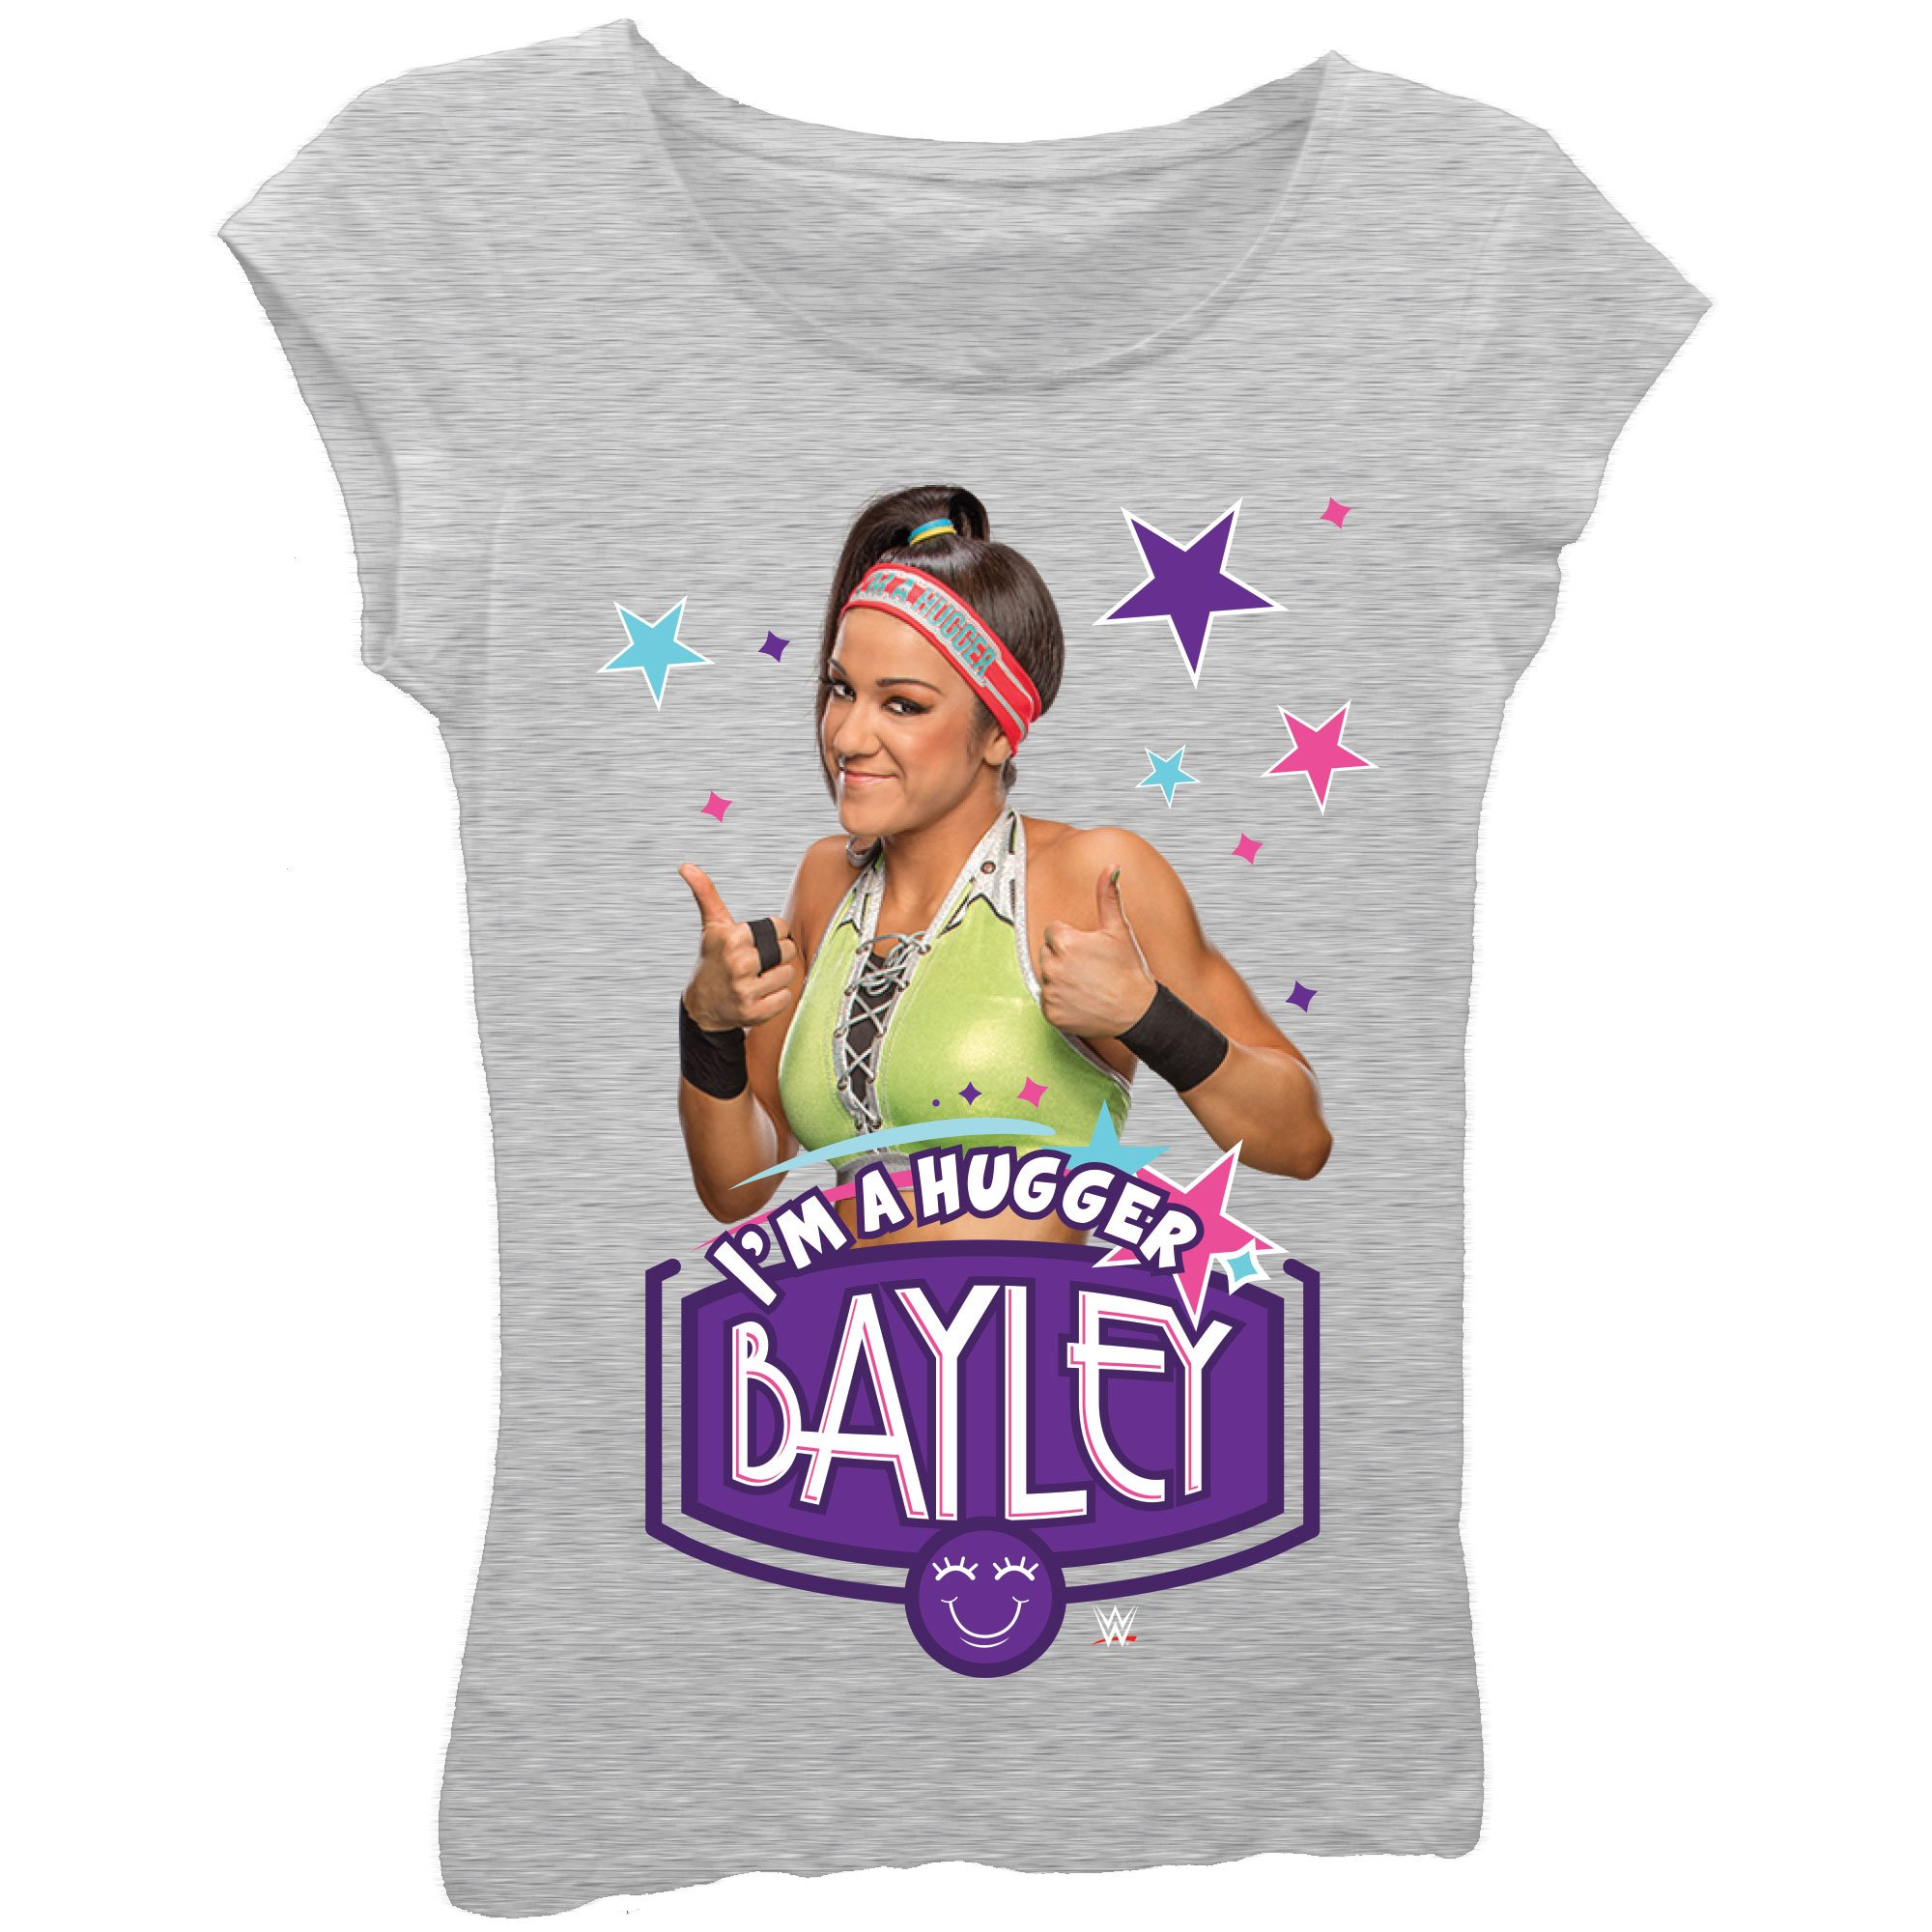 Bayley I'm a Hugger Superstar Girls Kids Grey T-Shirt-4